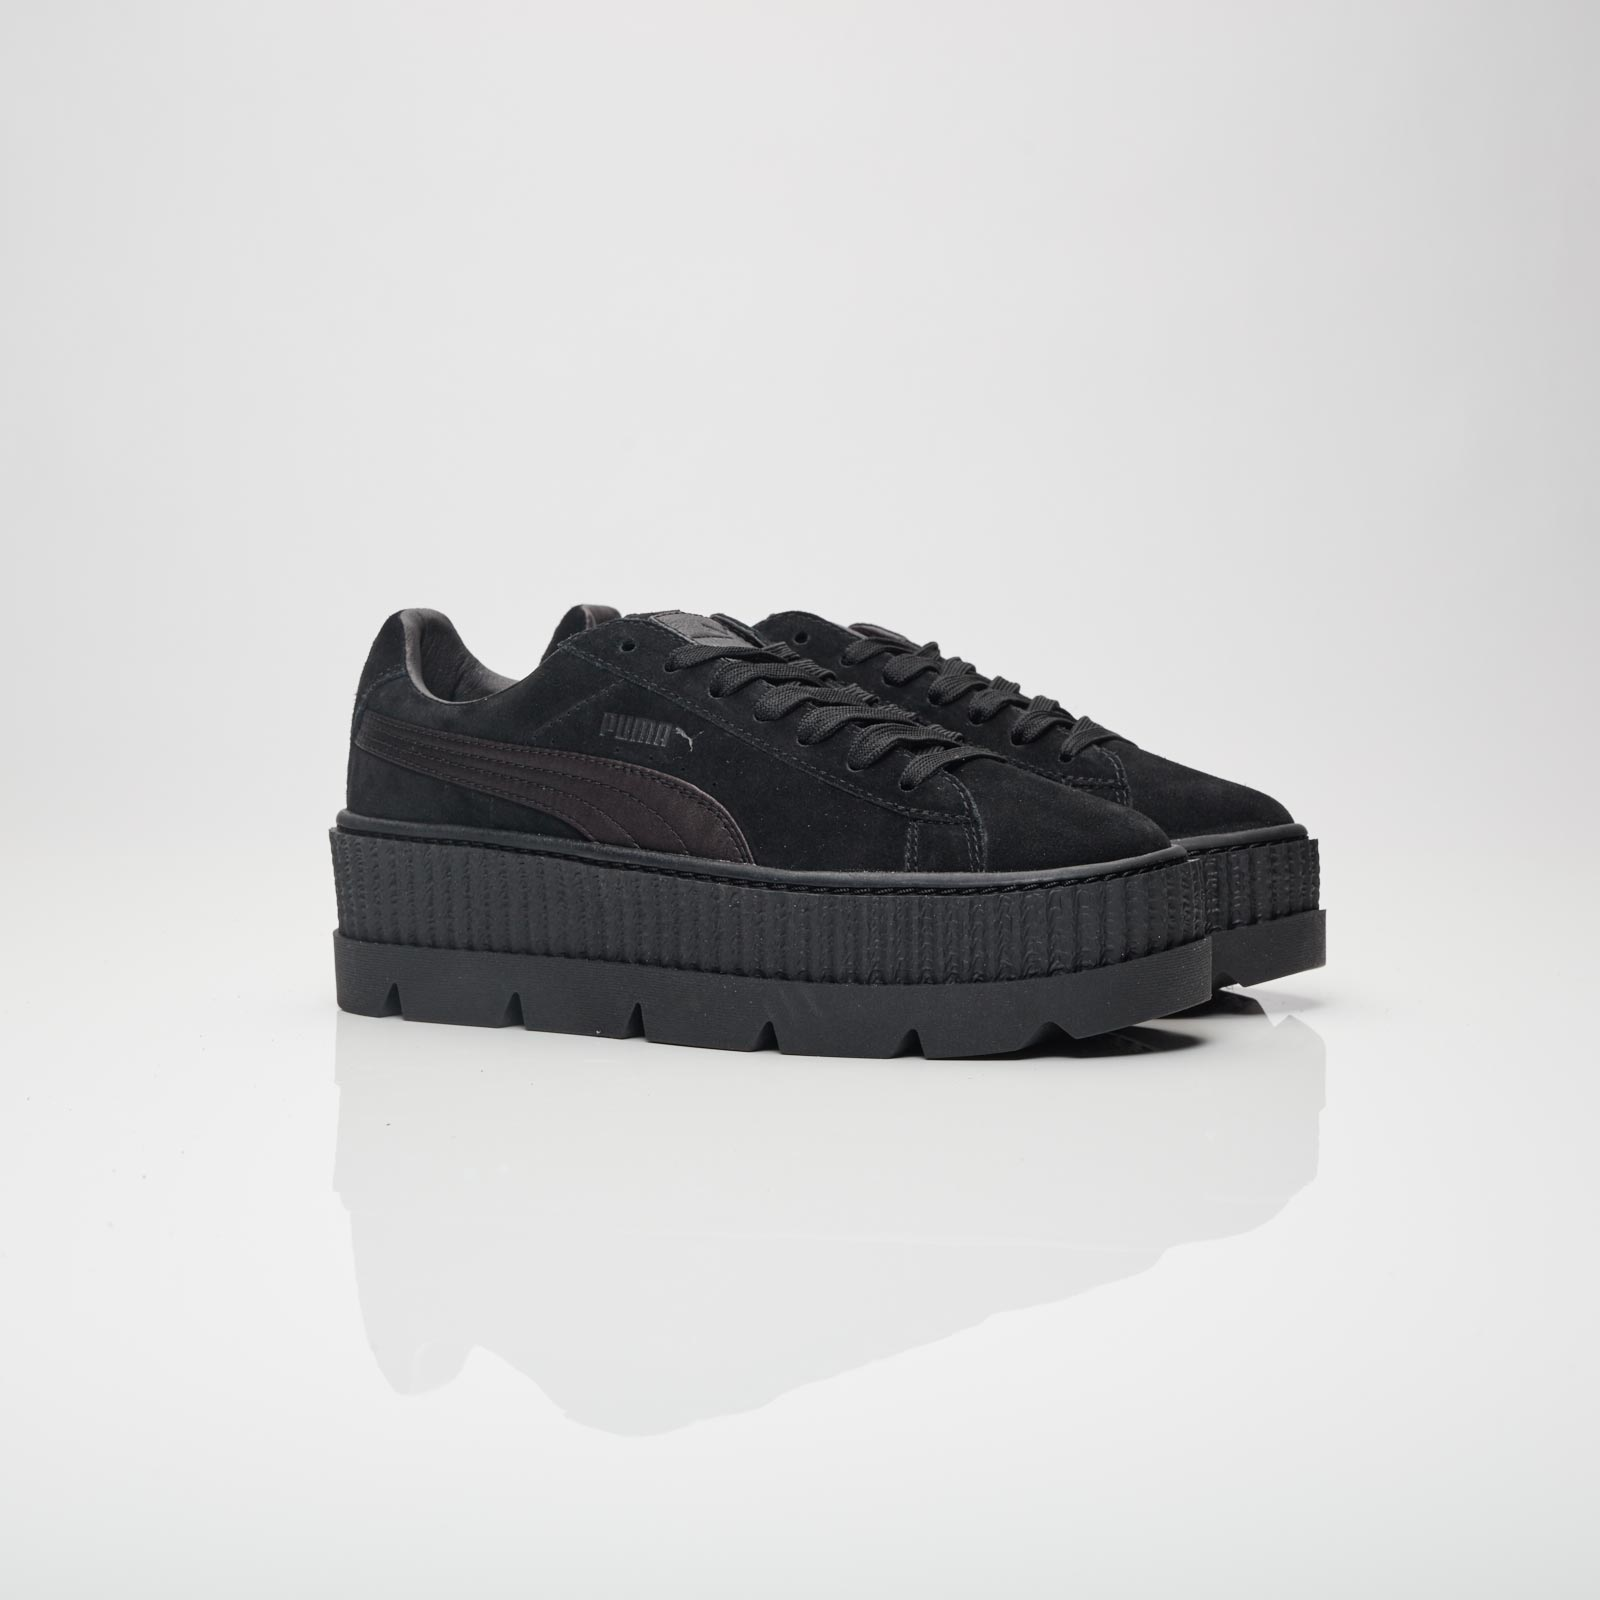 size 40 c416d f51ec Puma Cleated Creeper Suede Wns - 366268-04 - Sneakersnstuff ...